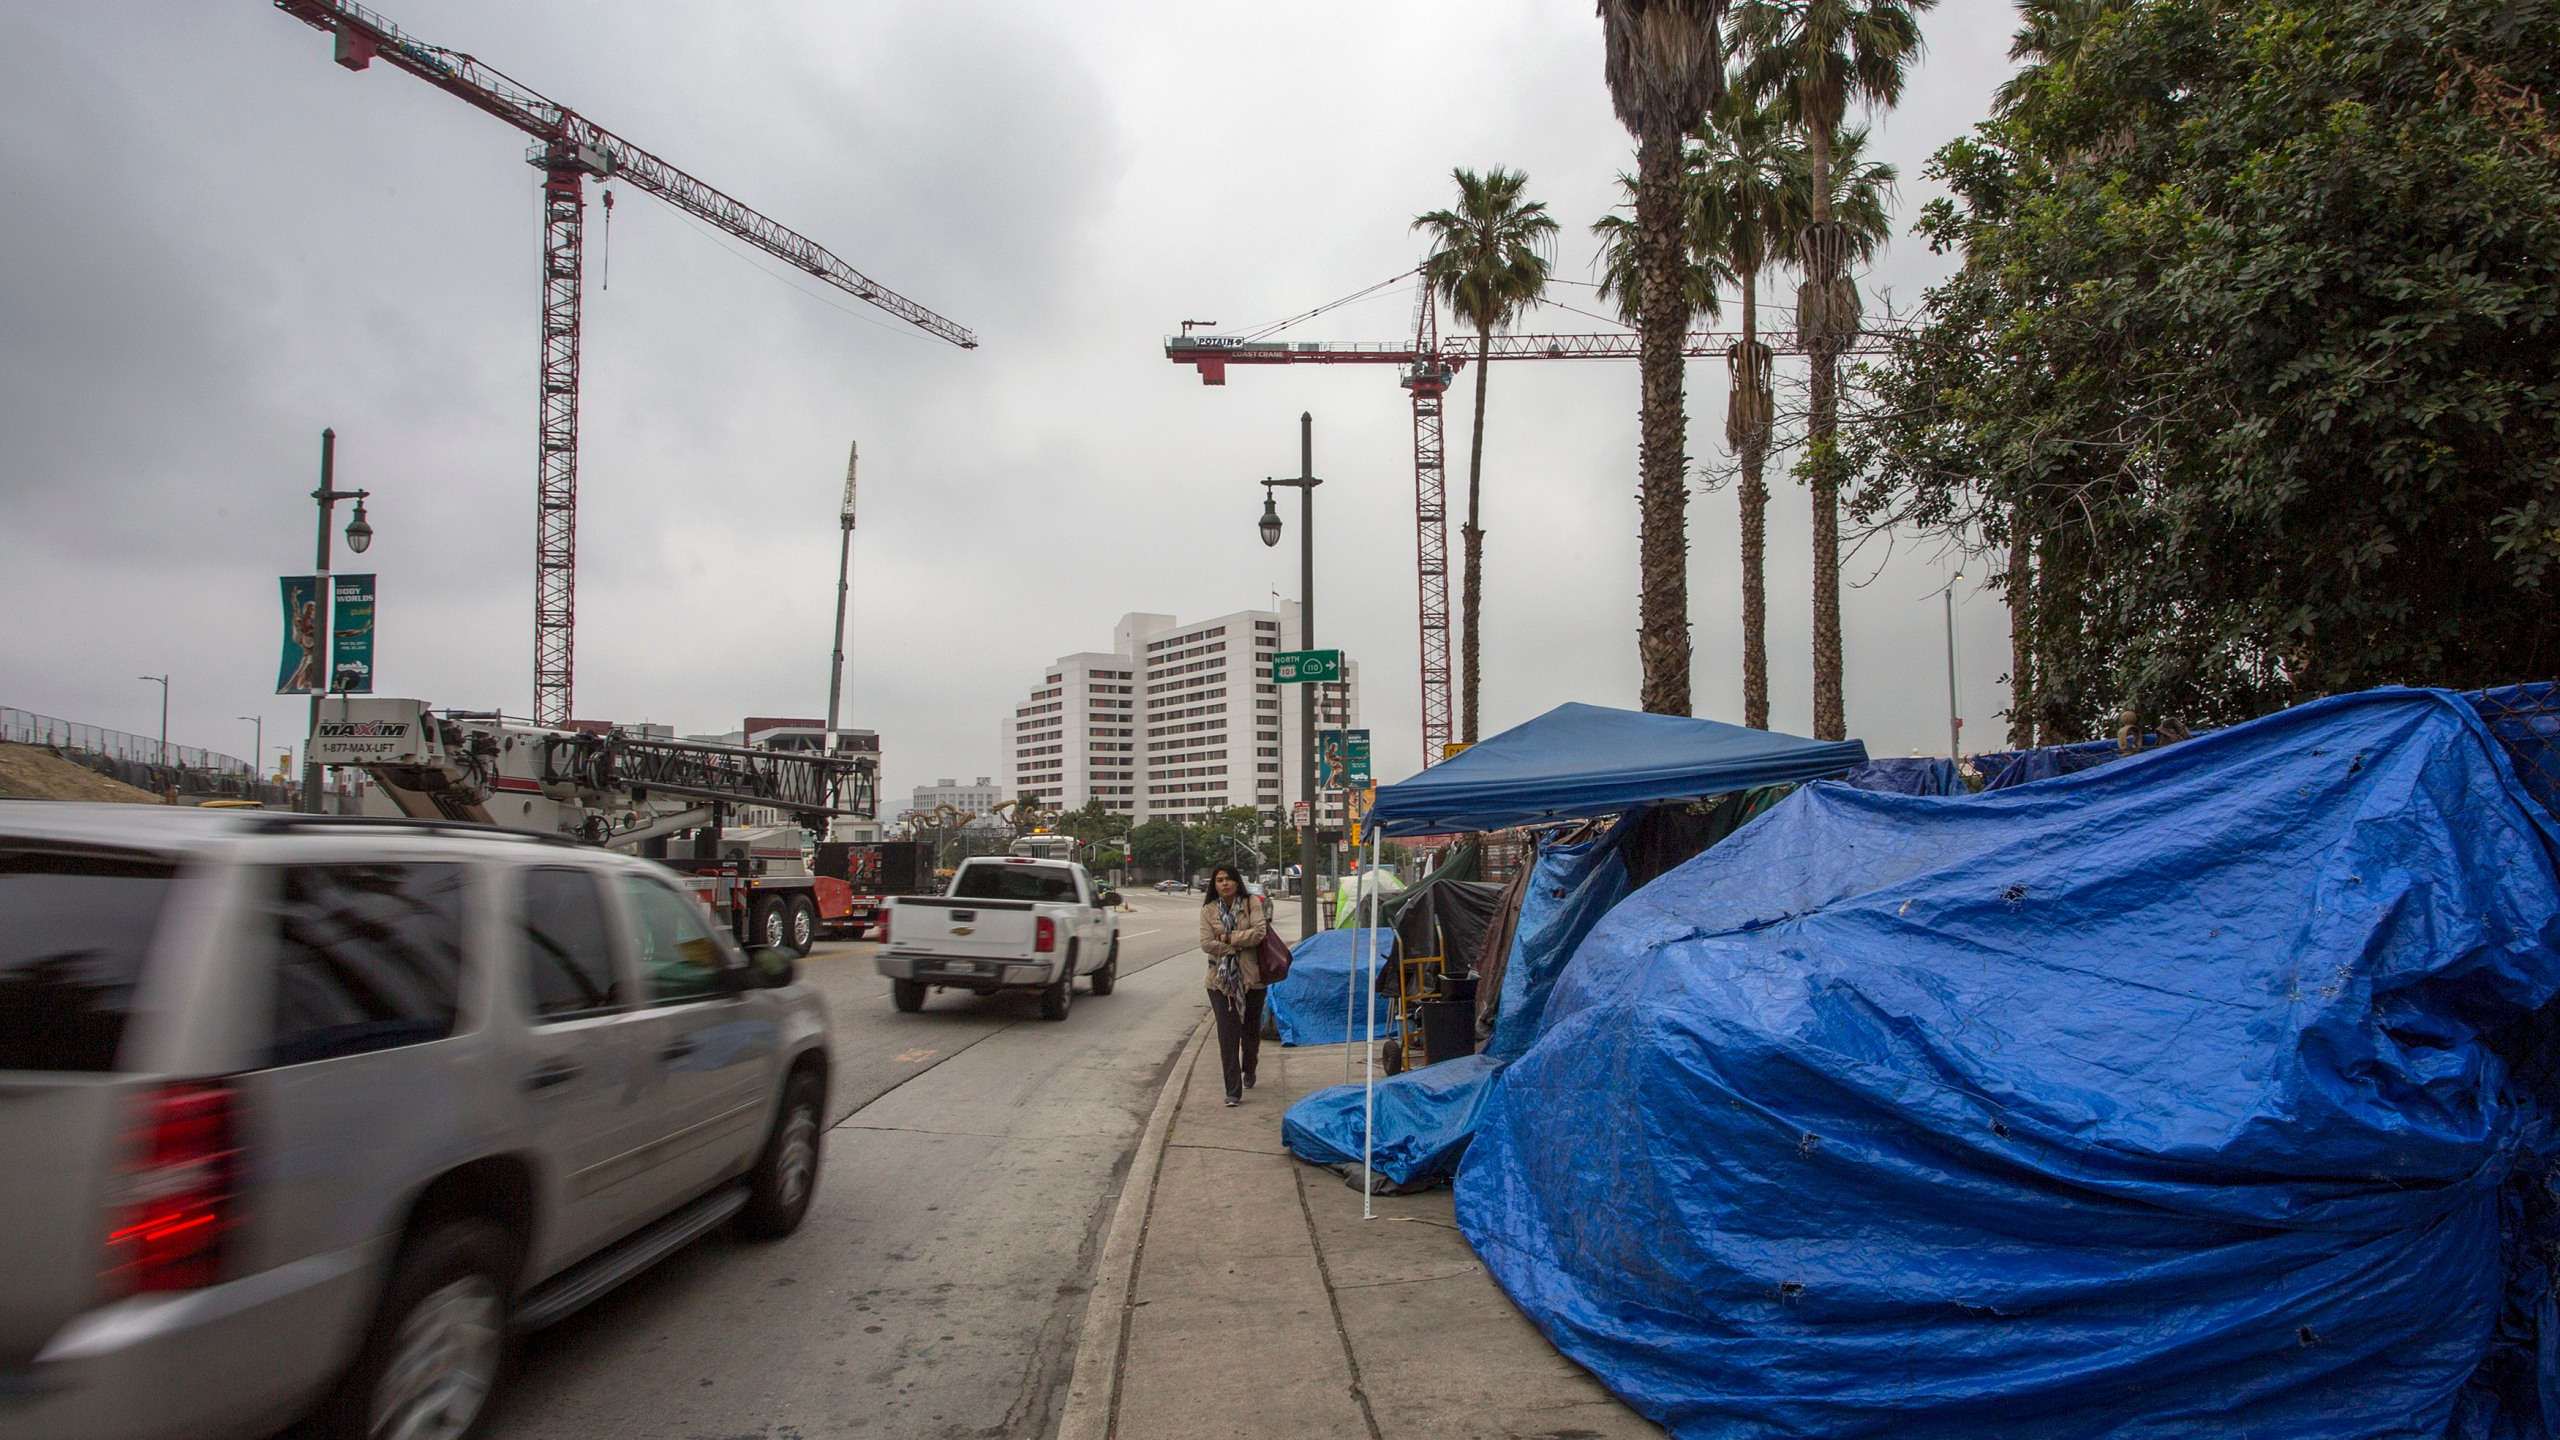 Cranes rise over a construction site near sidewalk homeless encampments on May 1, 2017 in Los Angeles. (Credit: David McNew/Getty Images)